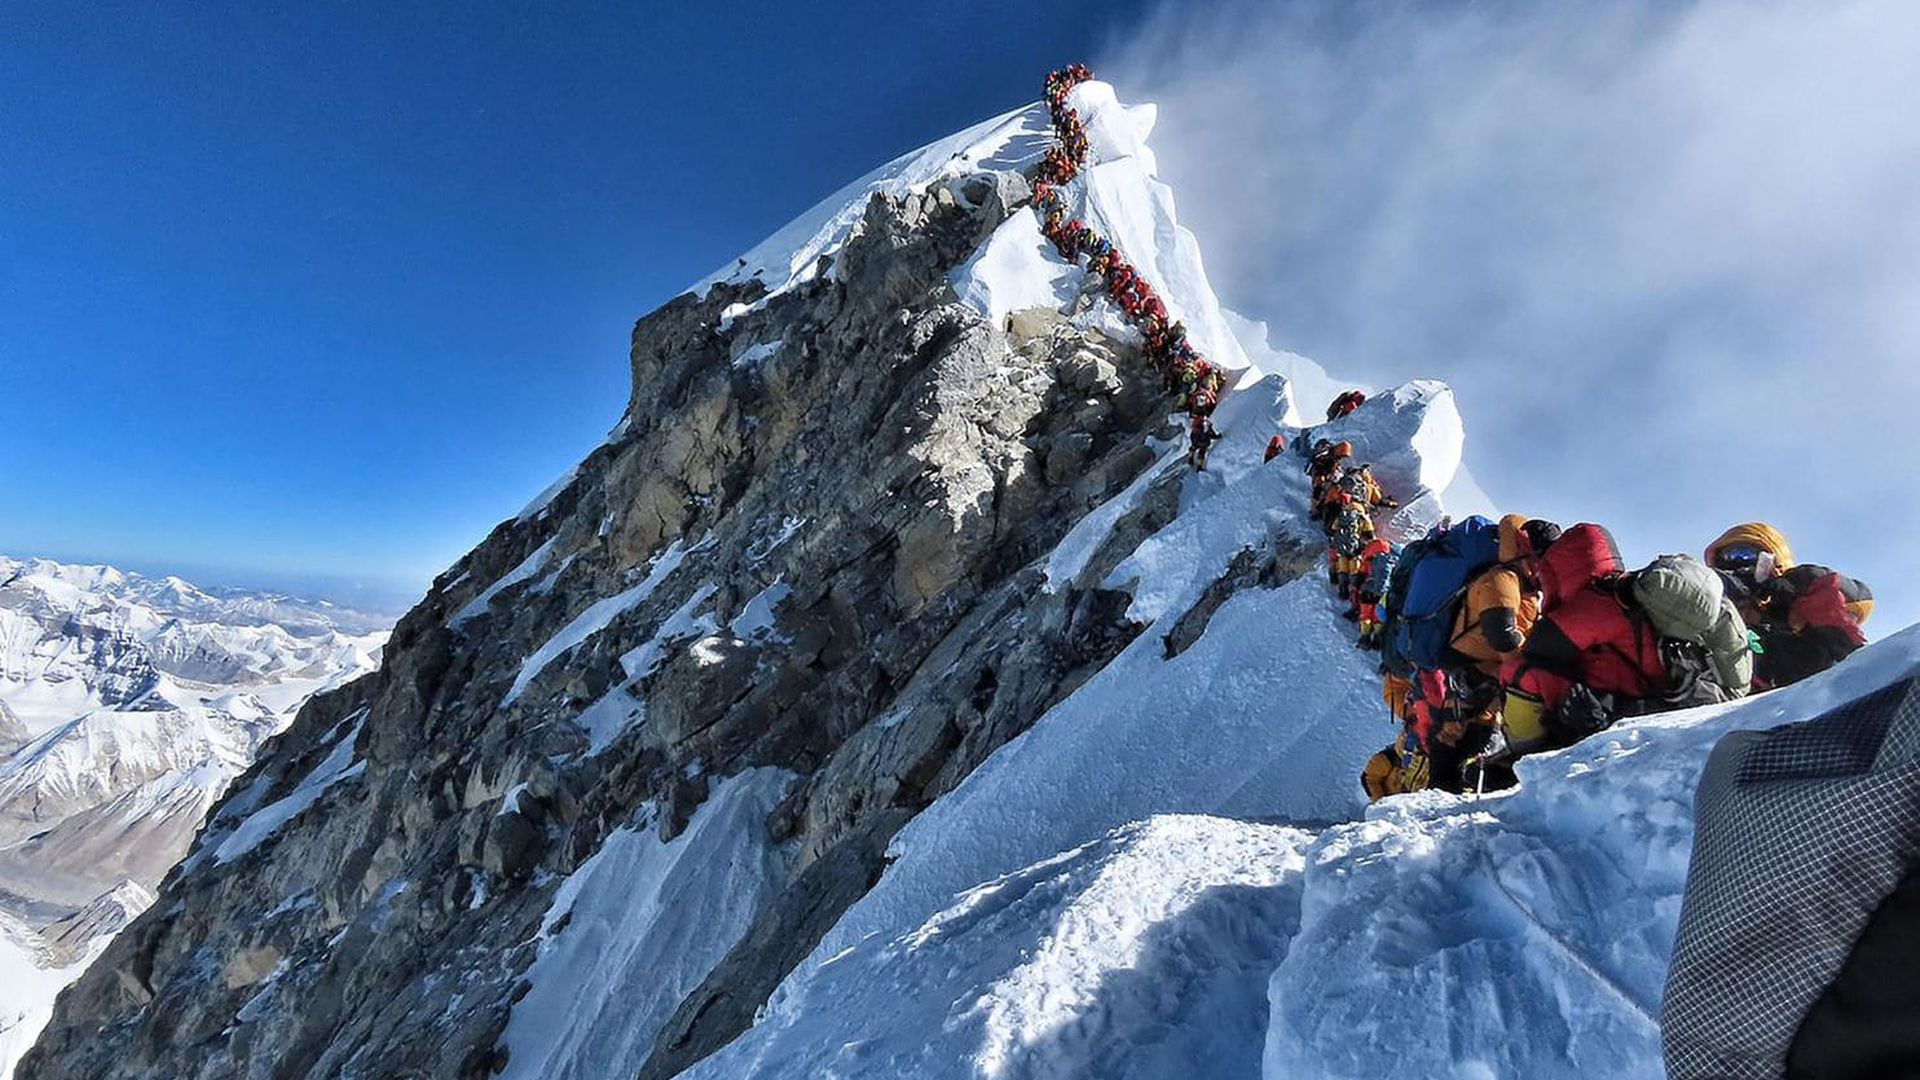 Mountain climbers line up to stand at Mount Everest's summit on May 22. (Nirmal Purja/Project Possible/AFP/Getty Images)